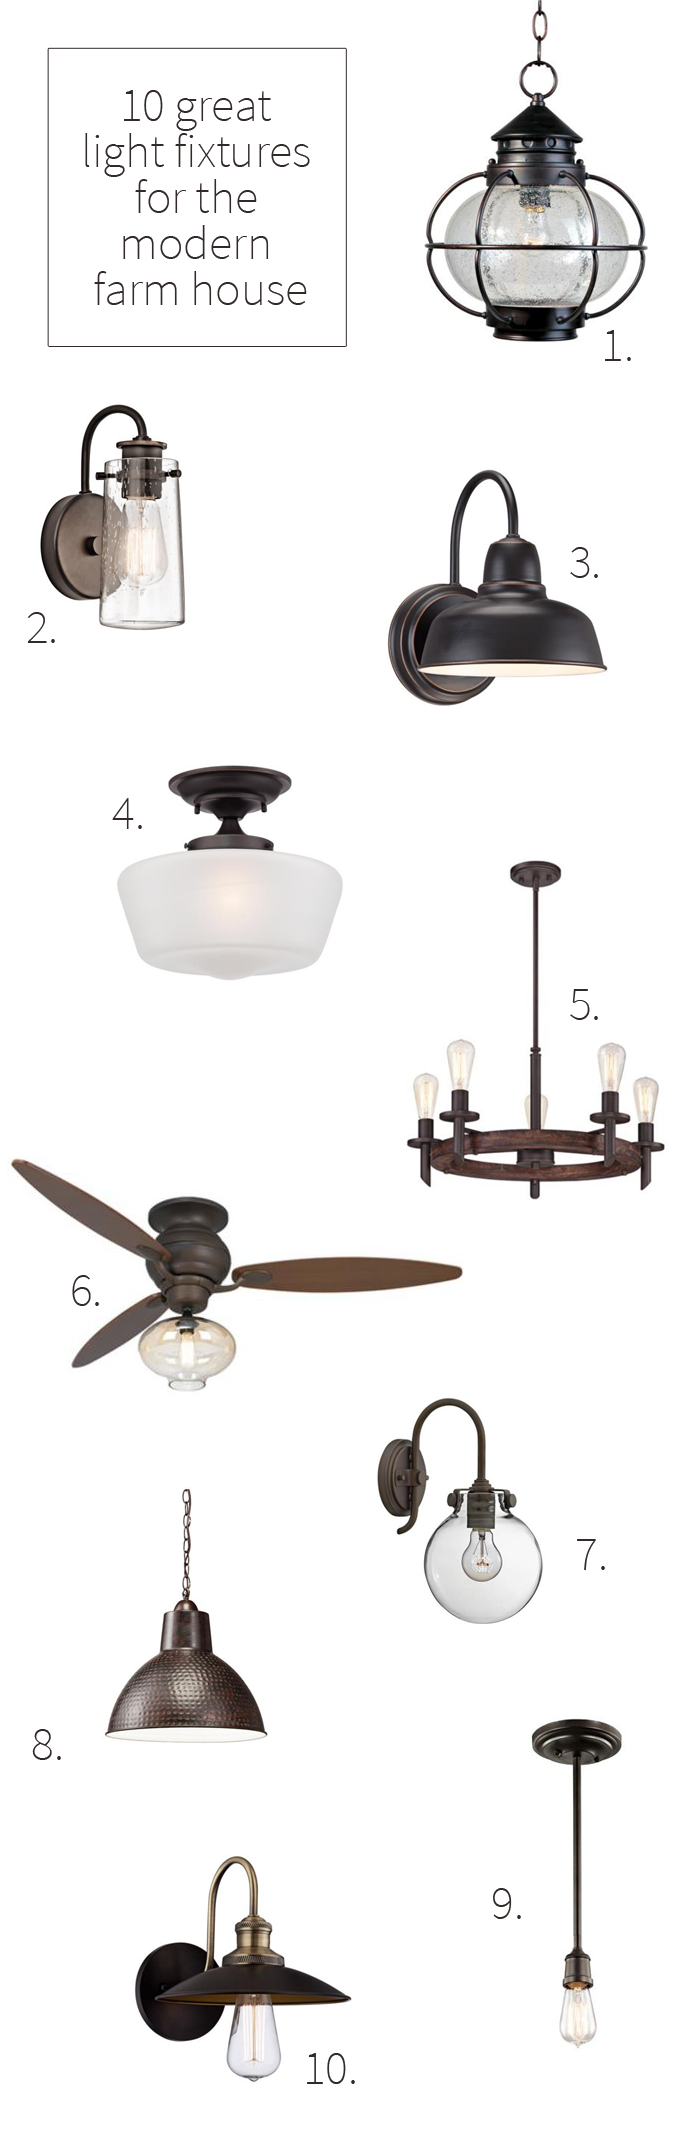 Bathroom Light Fixtures Under $50 10 great farm house light fixtures | farm house, farming and lights